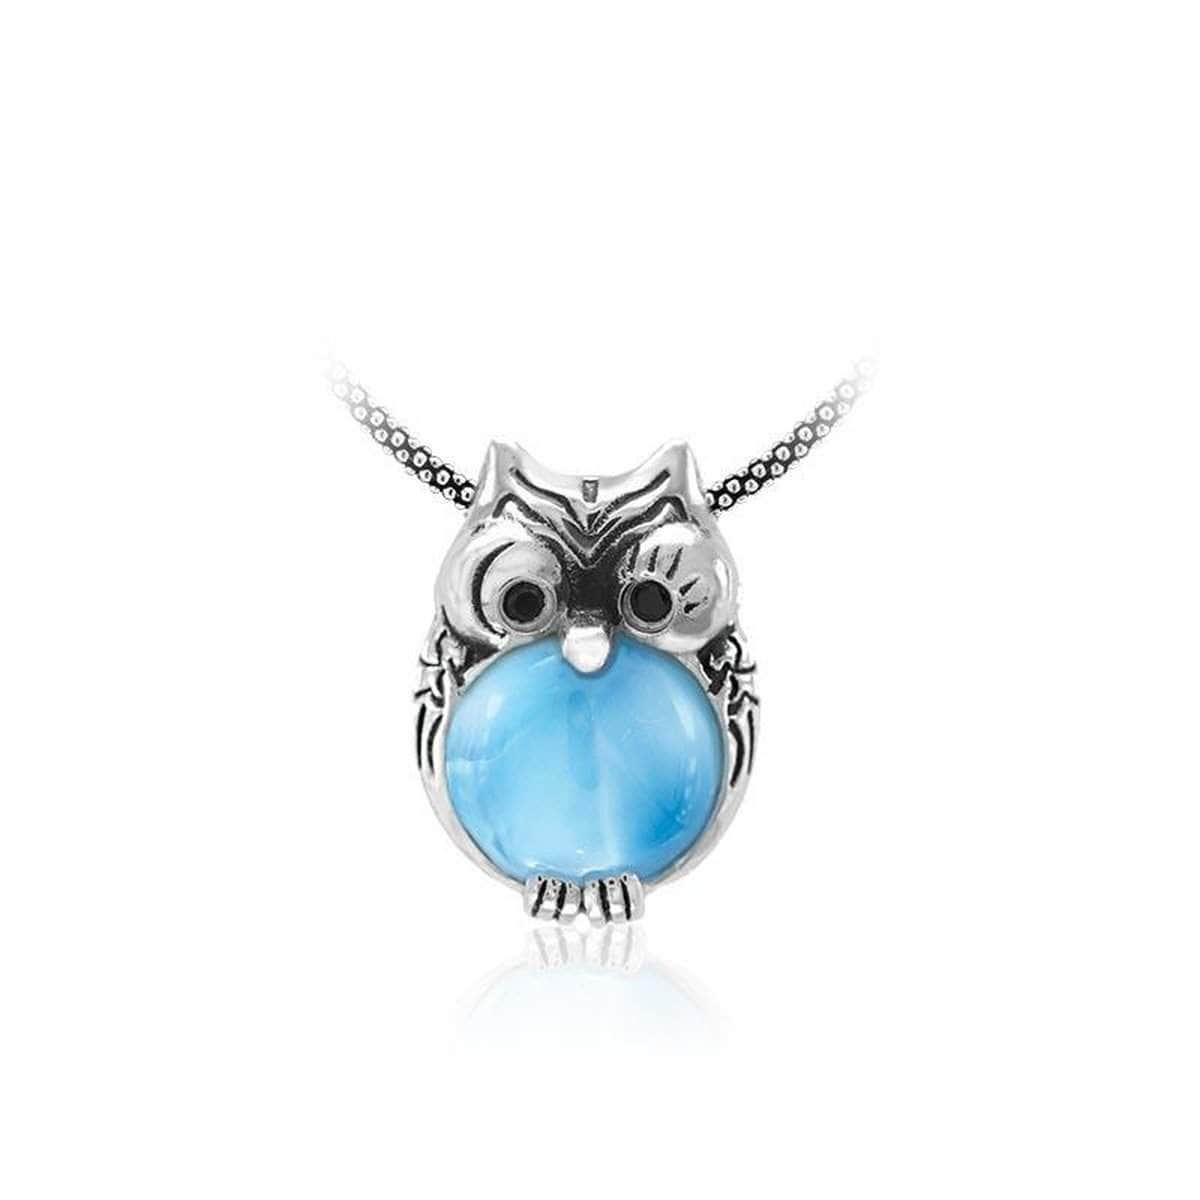 Wildlife Owl Necklace - Nowl000-00-Marahlago Larimar-Renee Taylor Gallery